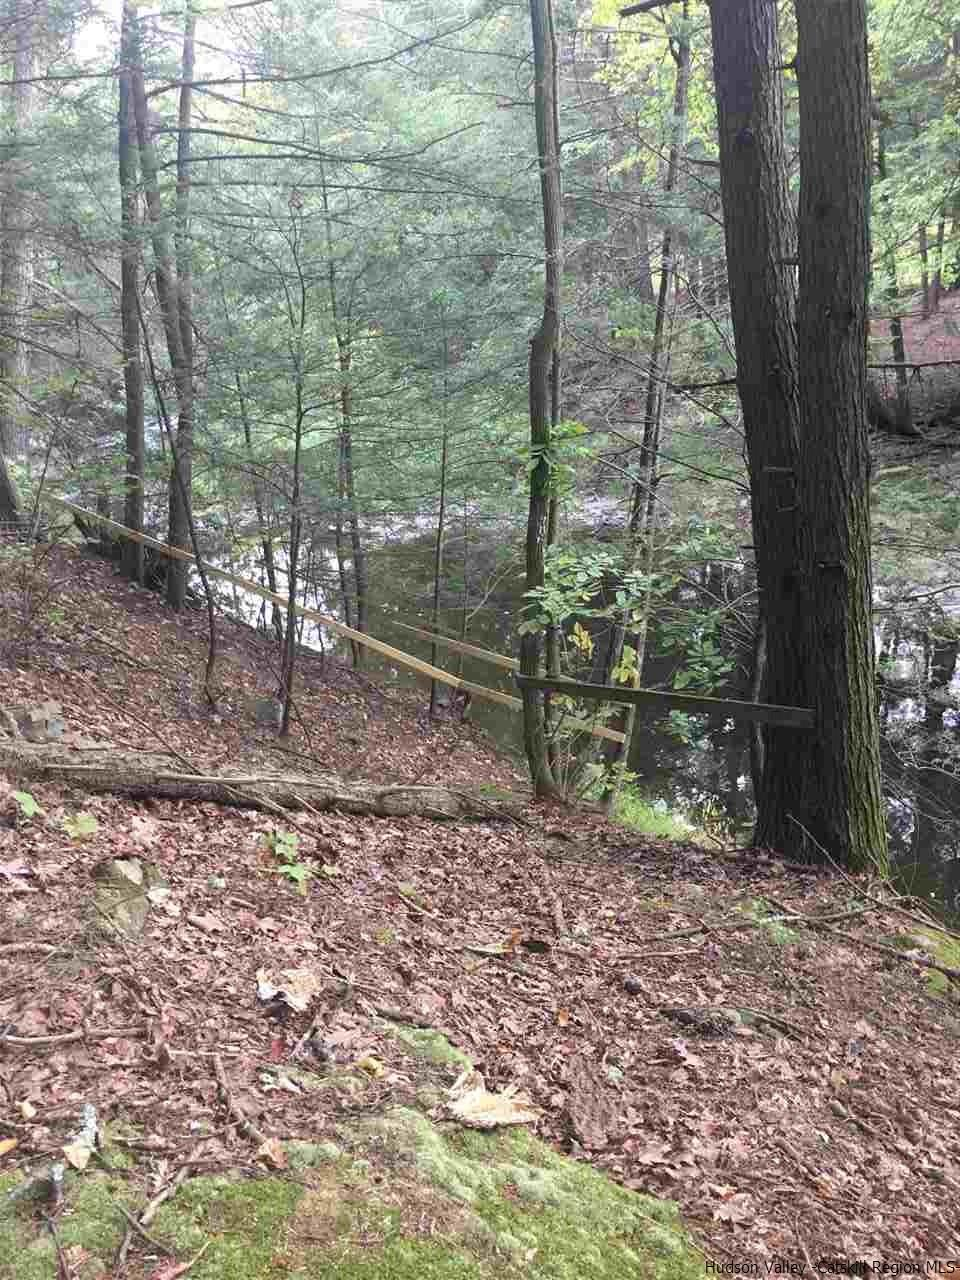 Additional photo for property listing at Lot#8 Lotus La. Lot#8 Lotus La. Saugerties, New York 12477 United States